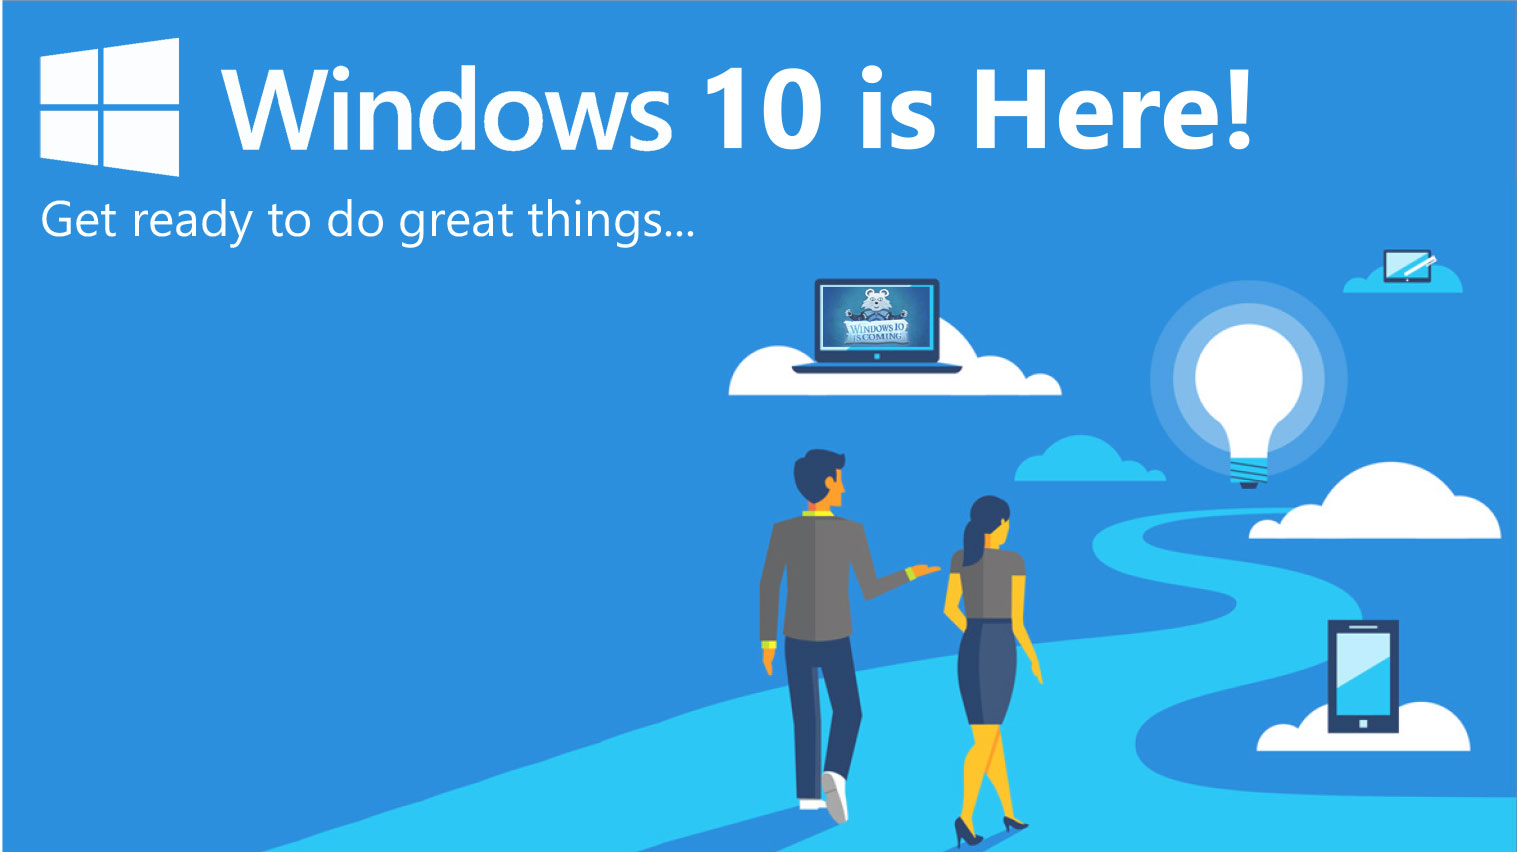 Windows 10 is Here! Get ready to do great things..